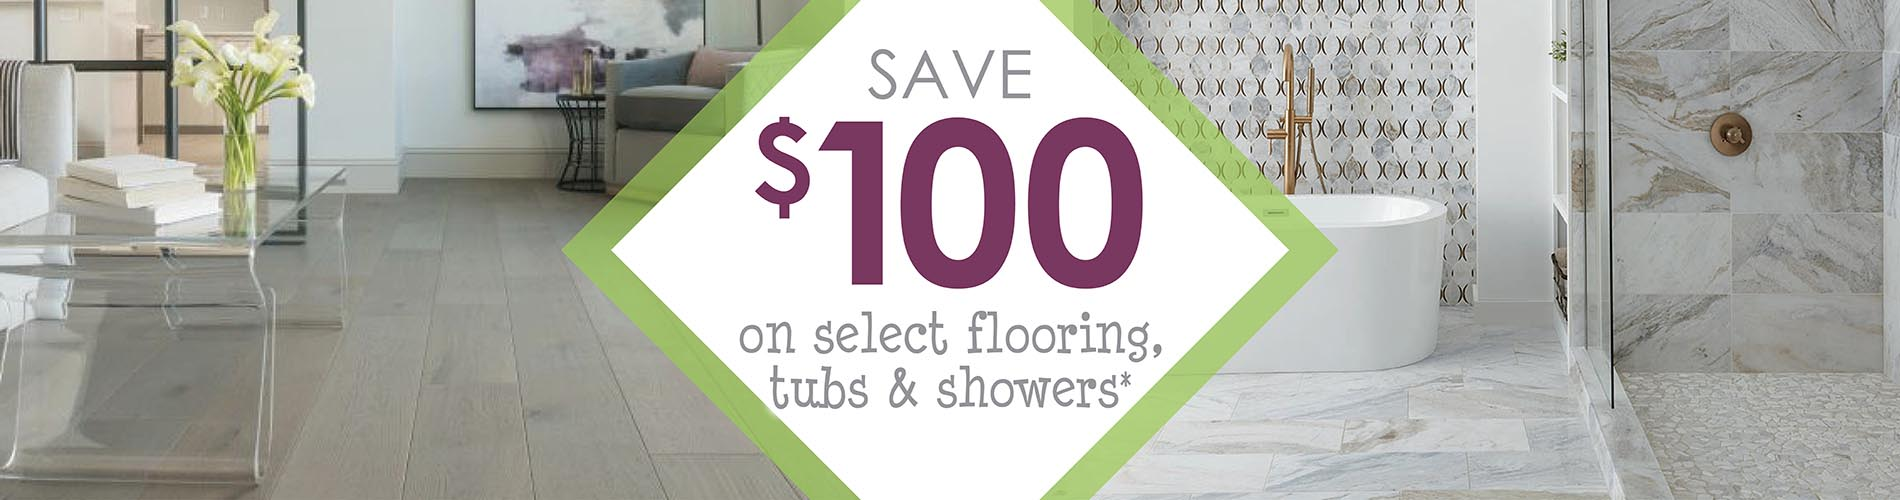 Mention this ad and SAVE $100 OFF* YOUR PURCHASE OF $999 OR MORE.   *Minimum product & installation purchase of $999. Cannot combine offers. Not valid on clearance, in-stock items, and prior purchases.